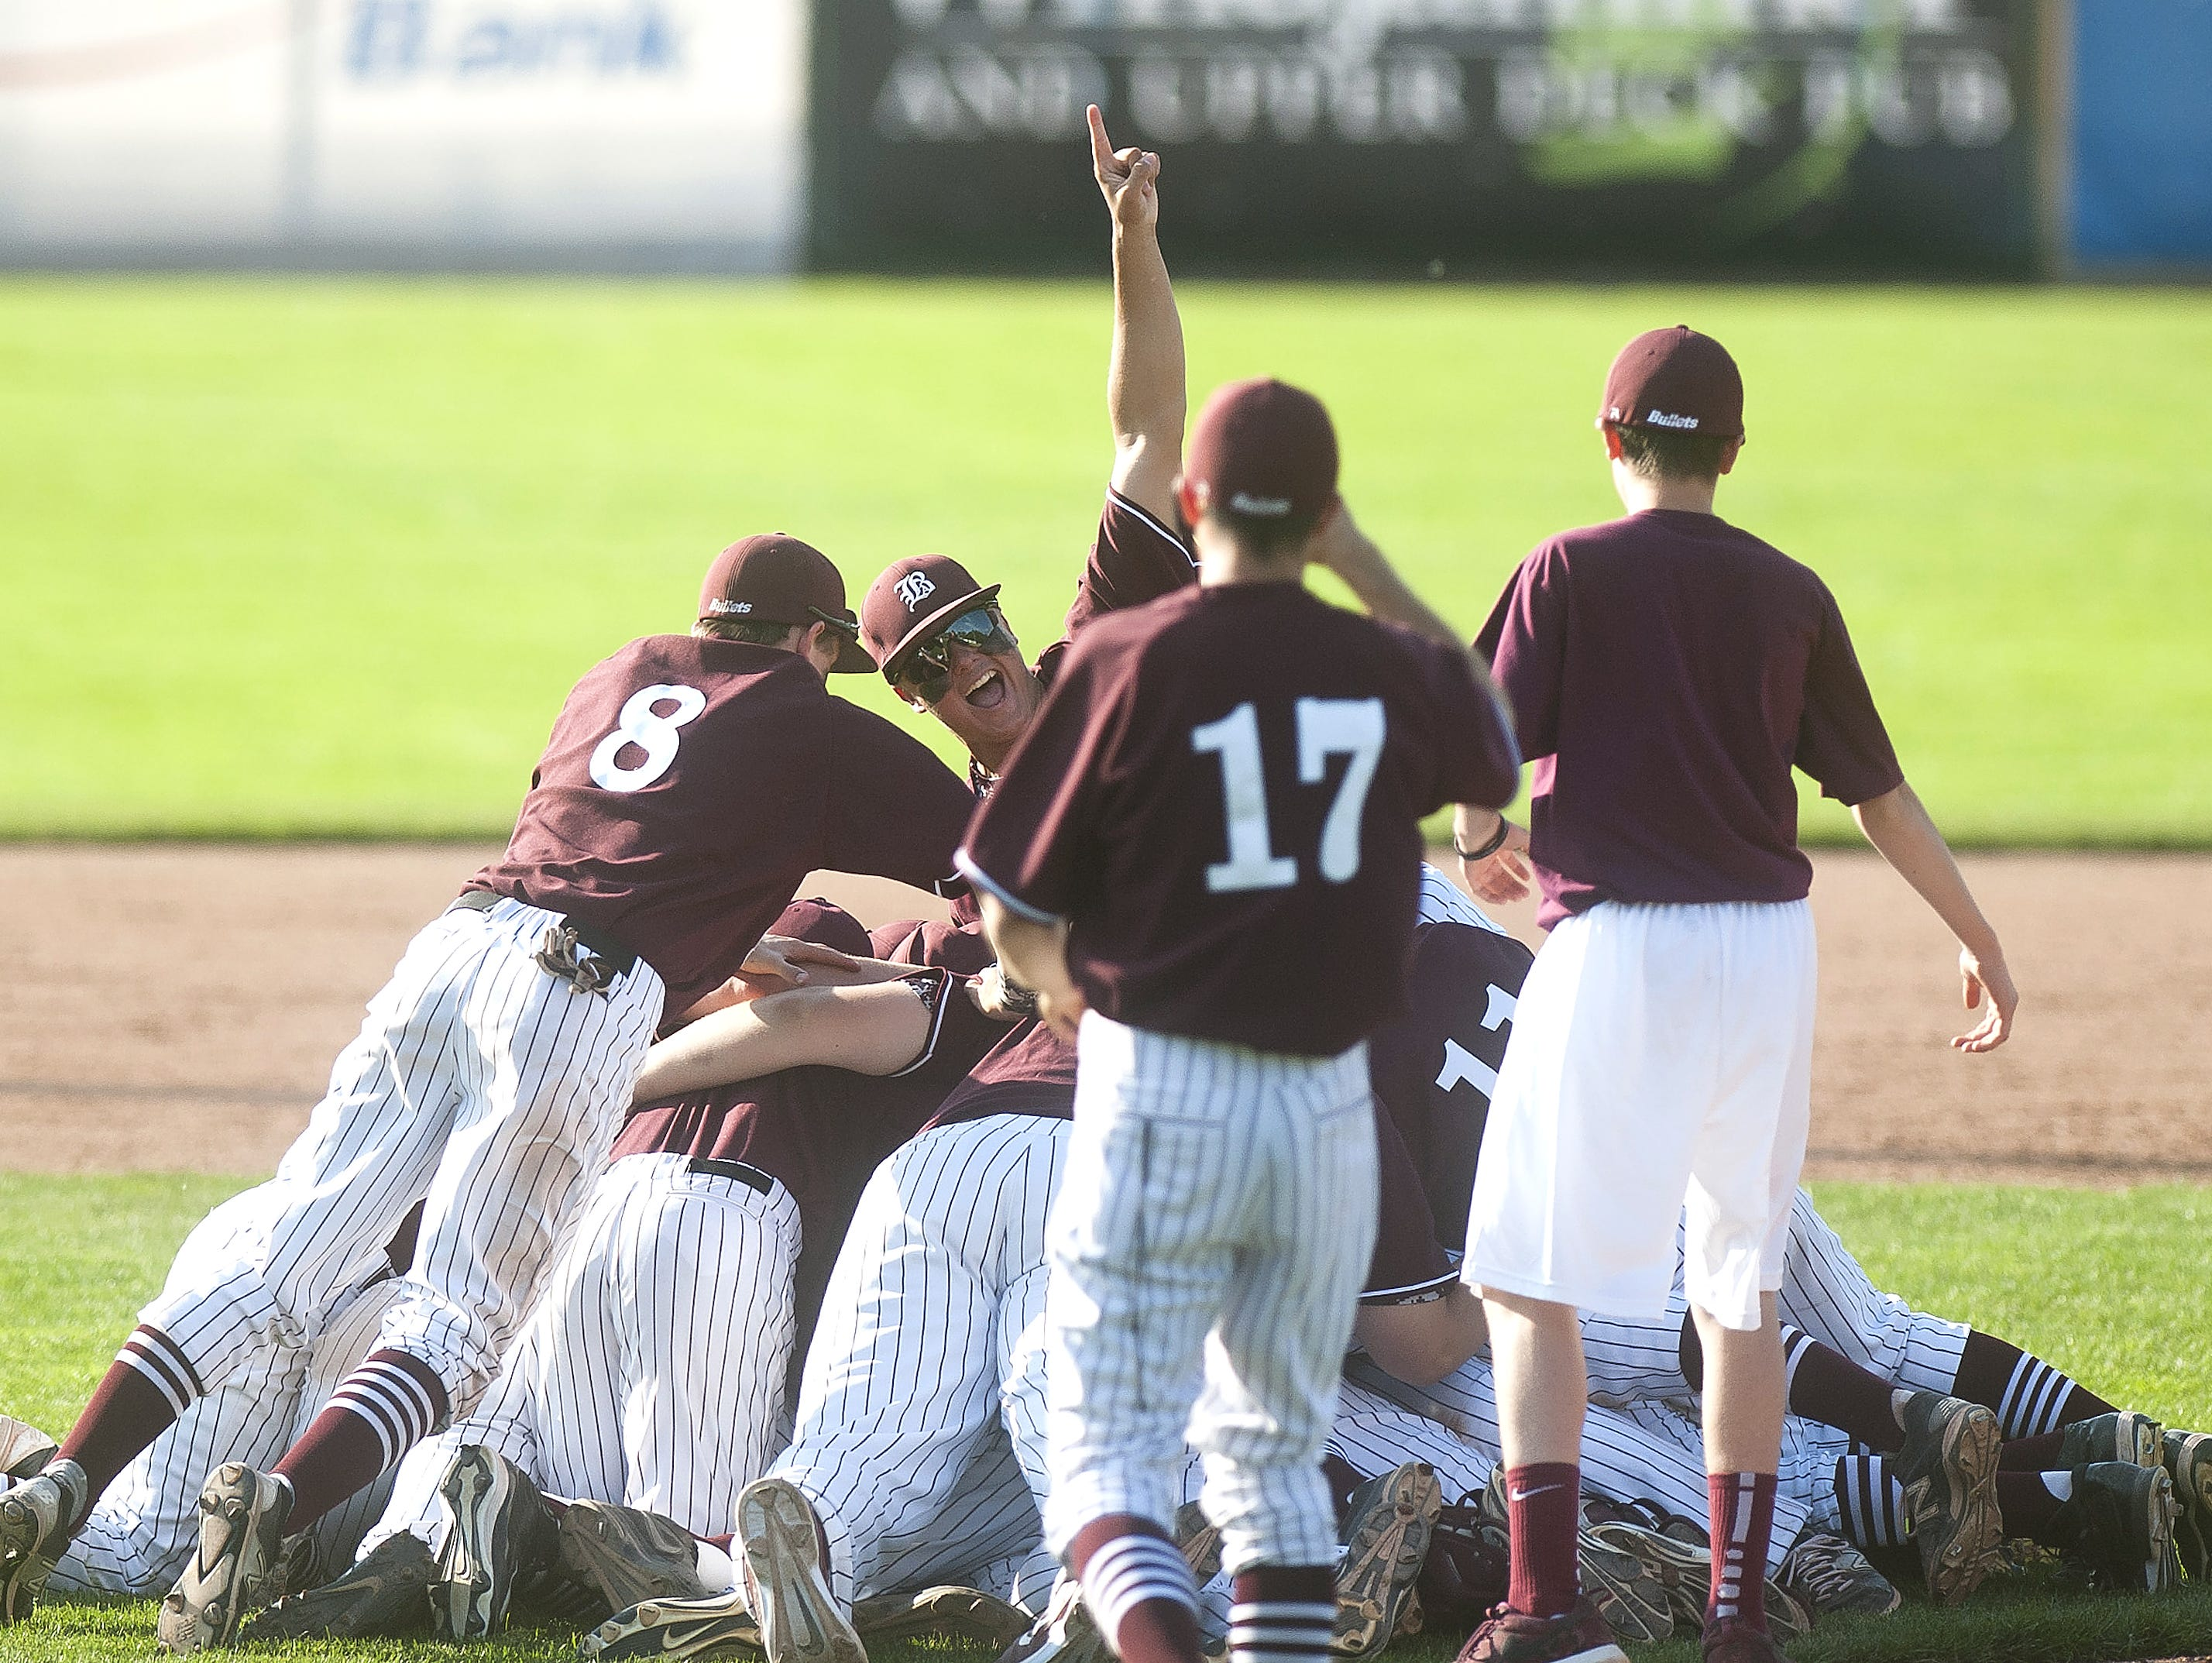 BFA-Fairfax players celebrate after the final out of their 13-3 victory over Williamstown in the Division III high school baseball state championship game on Saturday at Centennial Field.